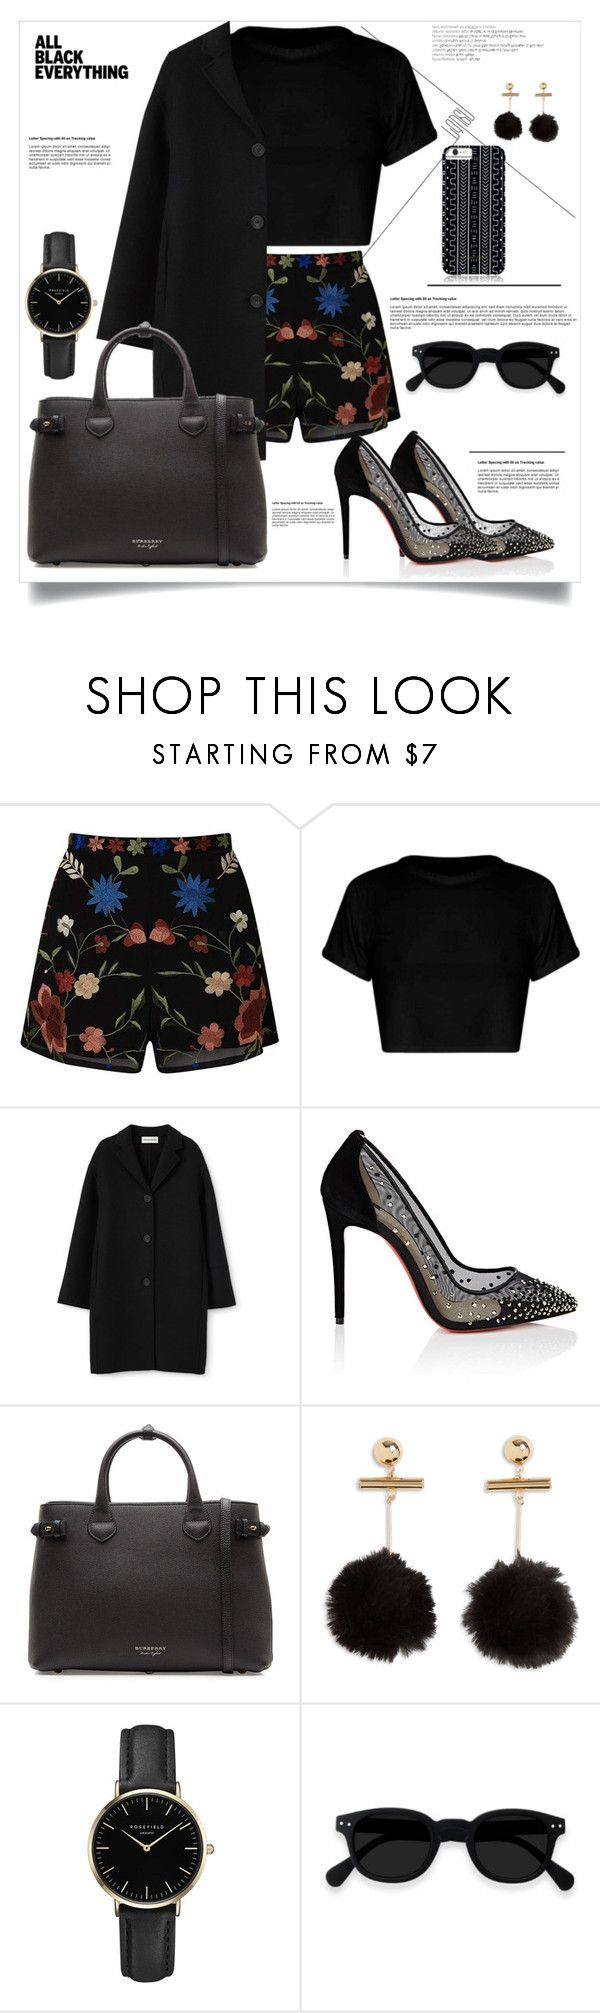 """black"" by ikamahardani ❤ liked on Polyvore featuring Miss Selfridge, Christian Louboutin, Burberry, ROSEFIELD, Savannah Hayes, contest and polyvorefashion"